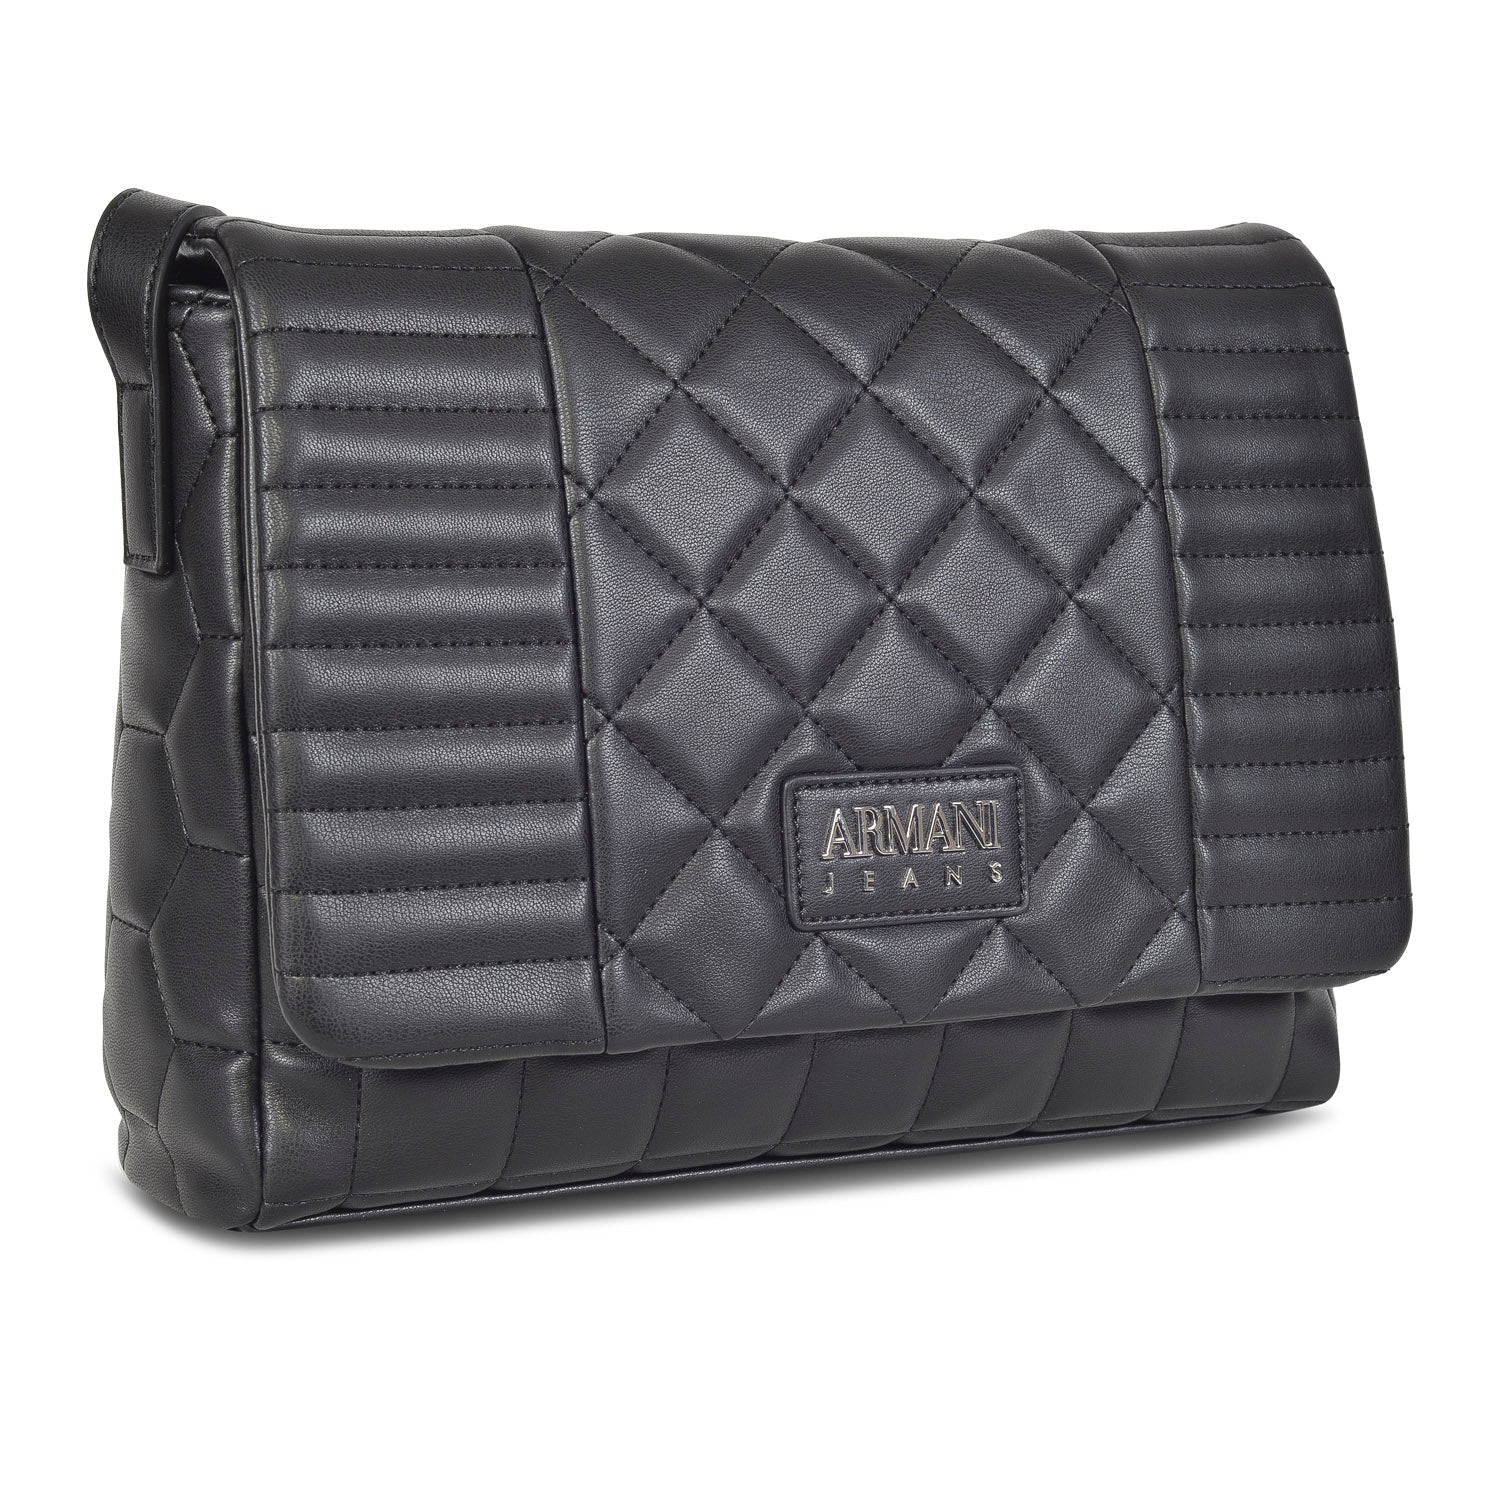 ARMANI DESIGNER WOMEN'S LEATHER QUILTED BAG